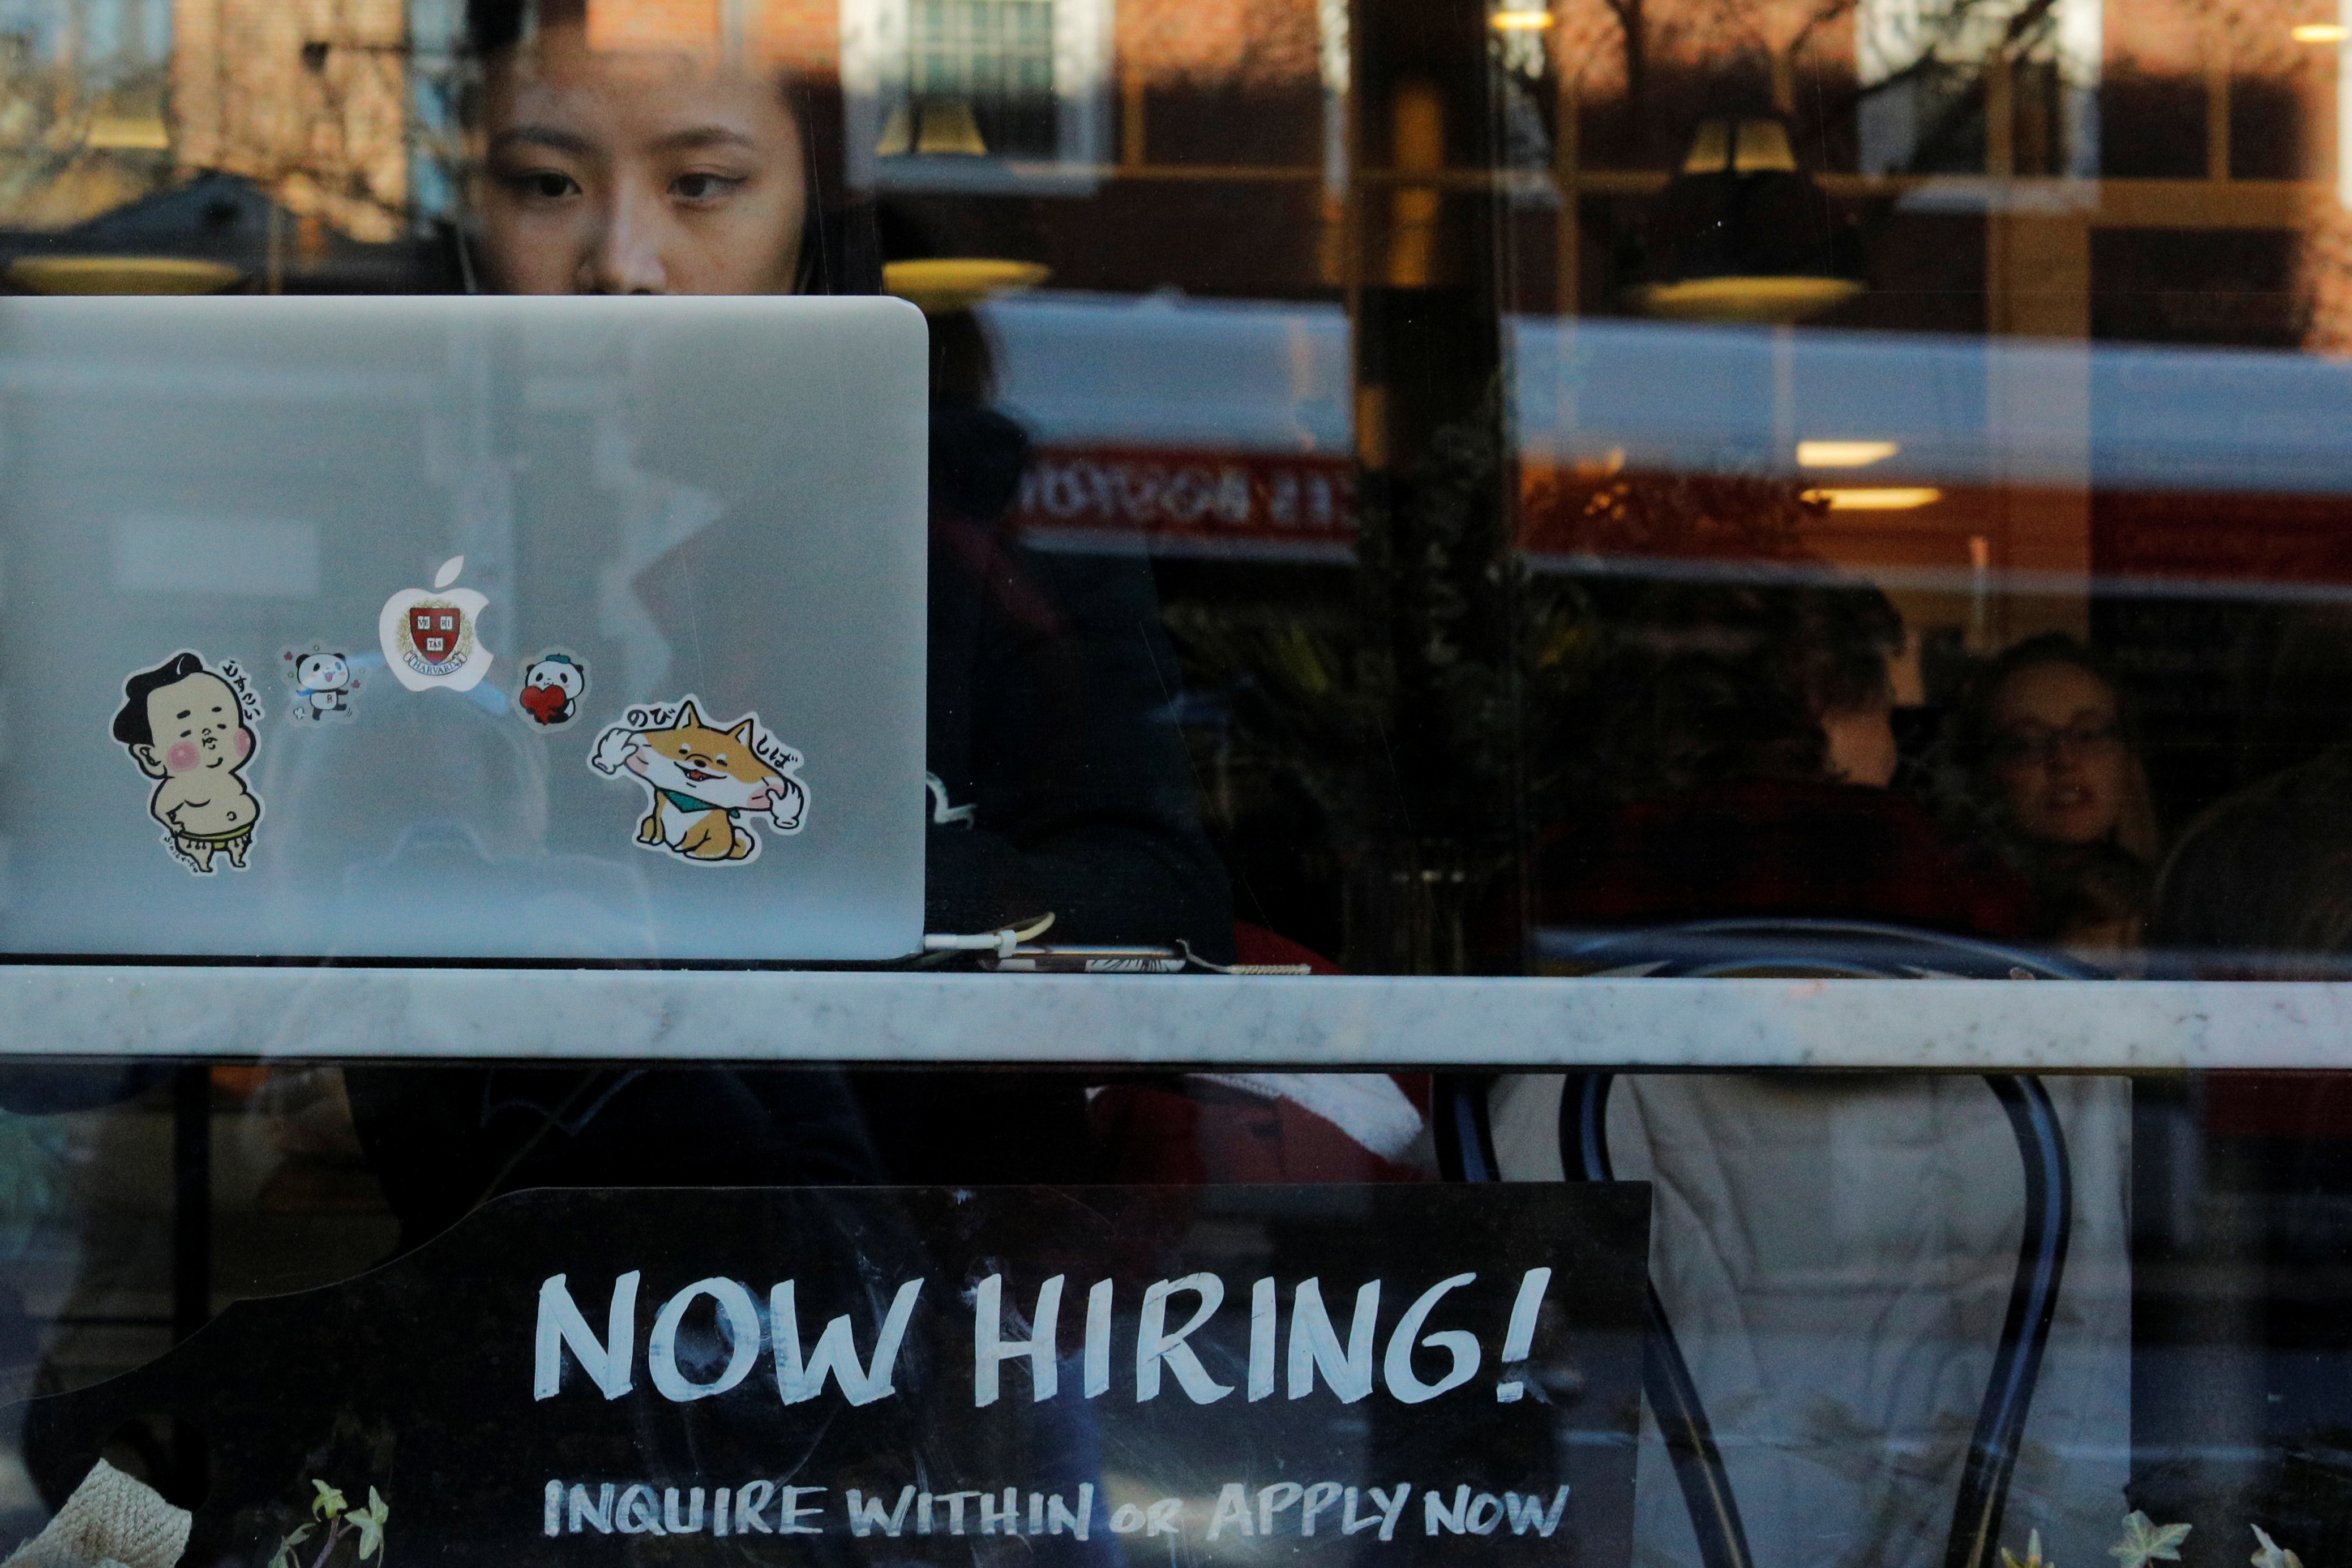 """A """"Now Hiring"""" sign sits in the window of Tatte Bakery and Cafe in Cambridge, Massachusetts, U.S., February 11, 2019.   REUTERS/Brian Snyder - RC179706A2B0"""